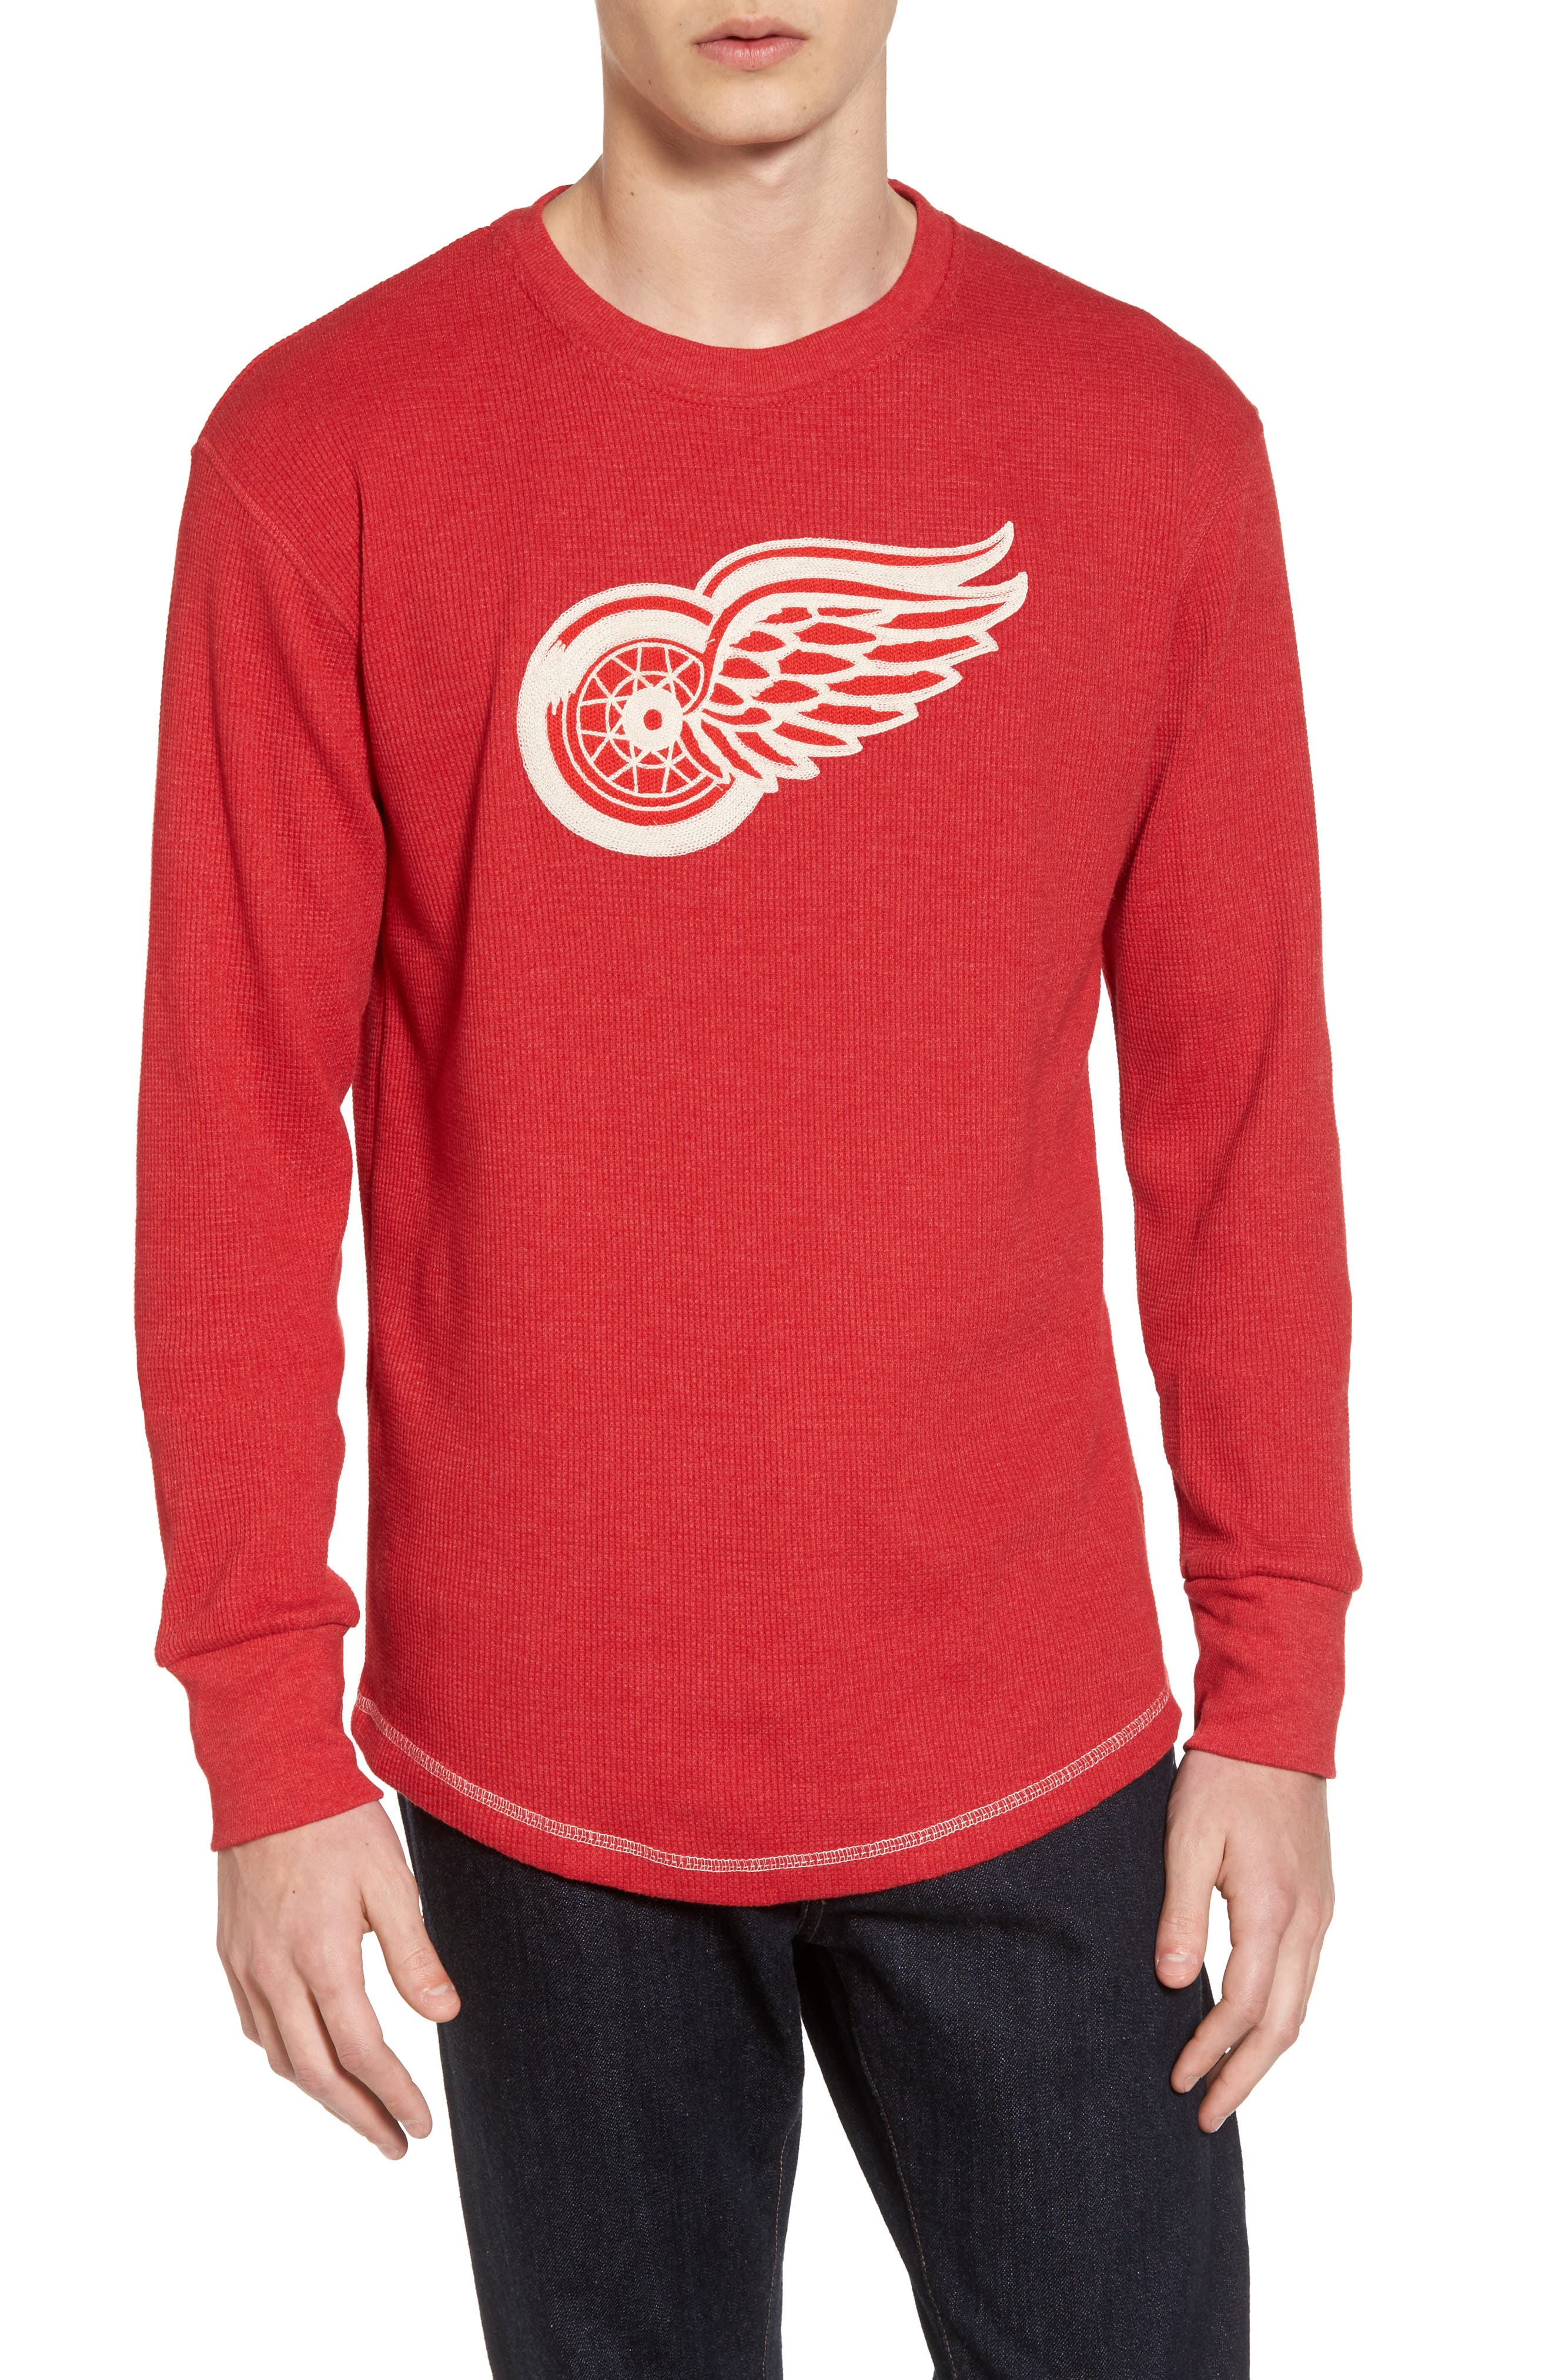 Detroit Red Wings Embroidered Long Sleeve Thermal Shirt,                             Main thumbnail 1, color,                             600